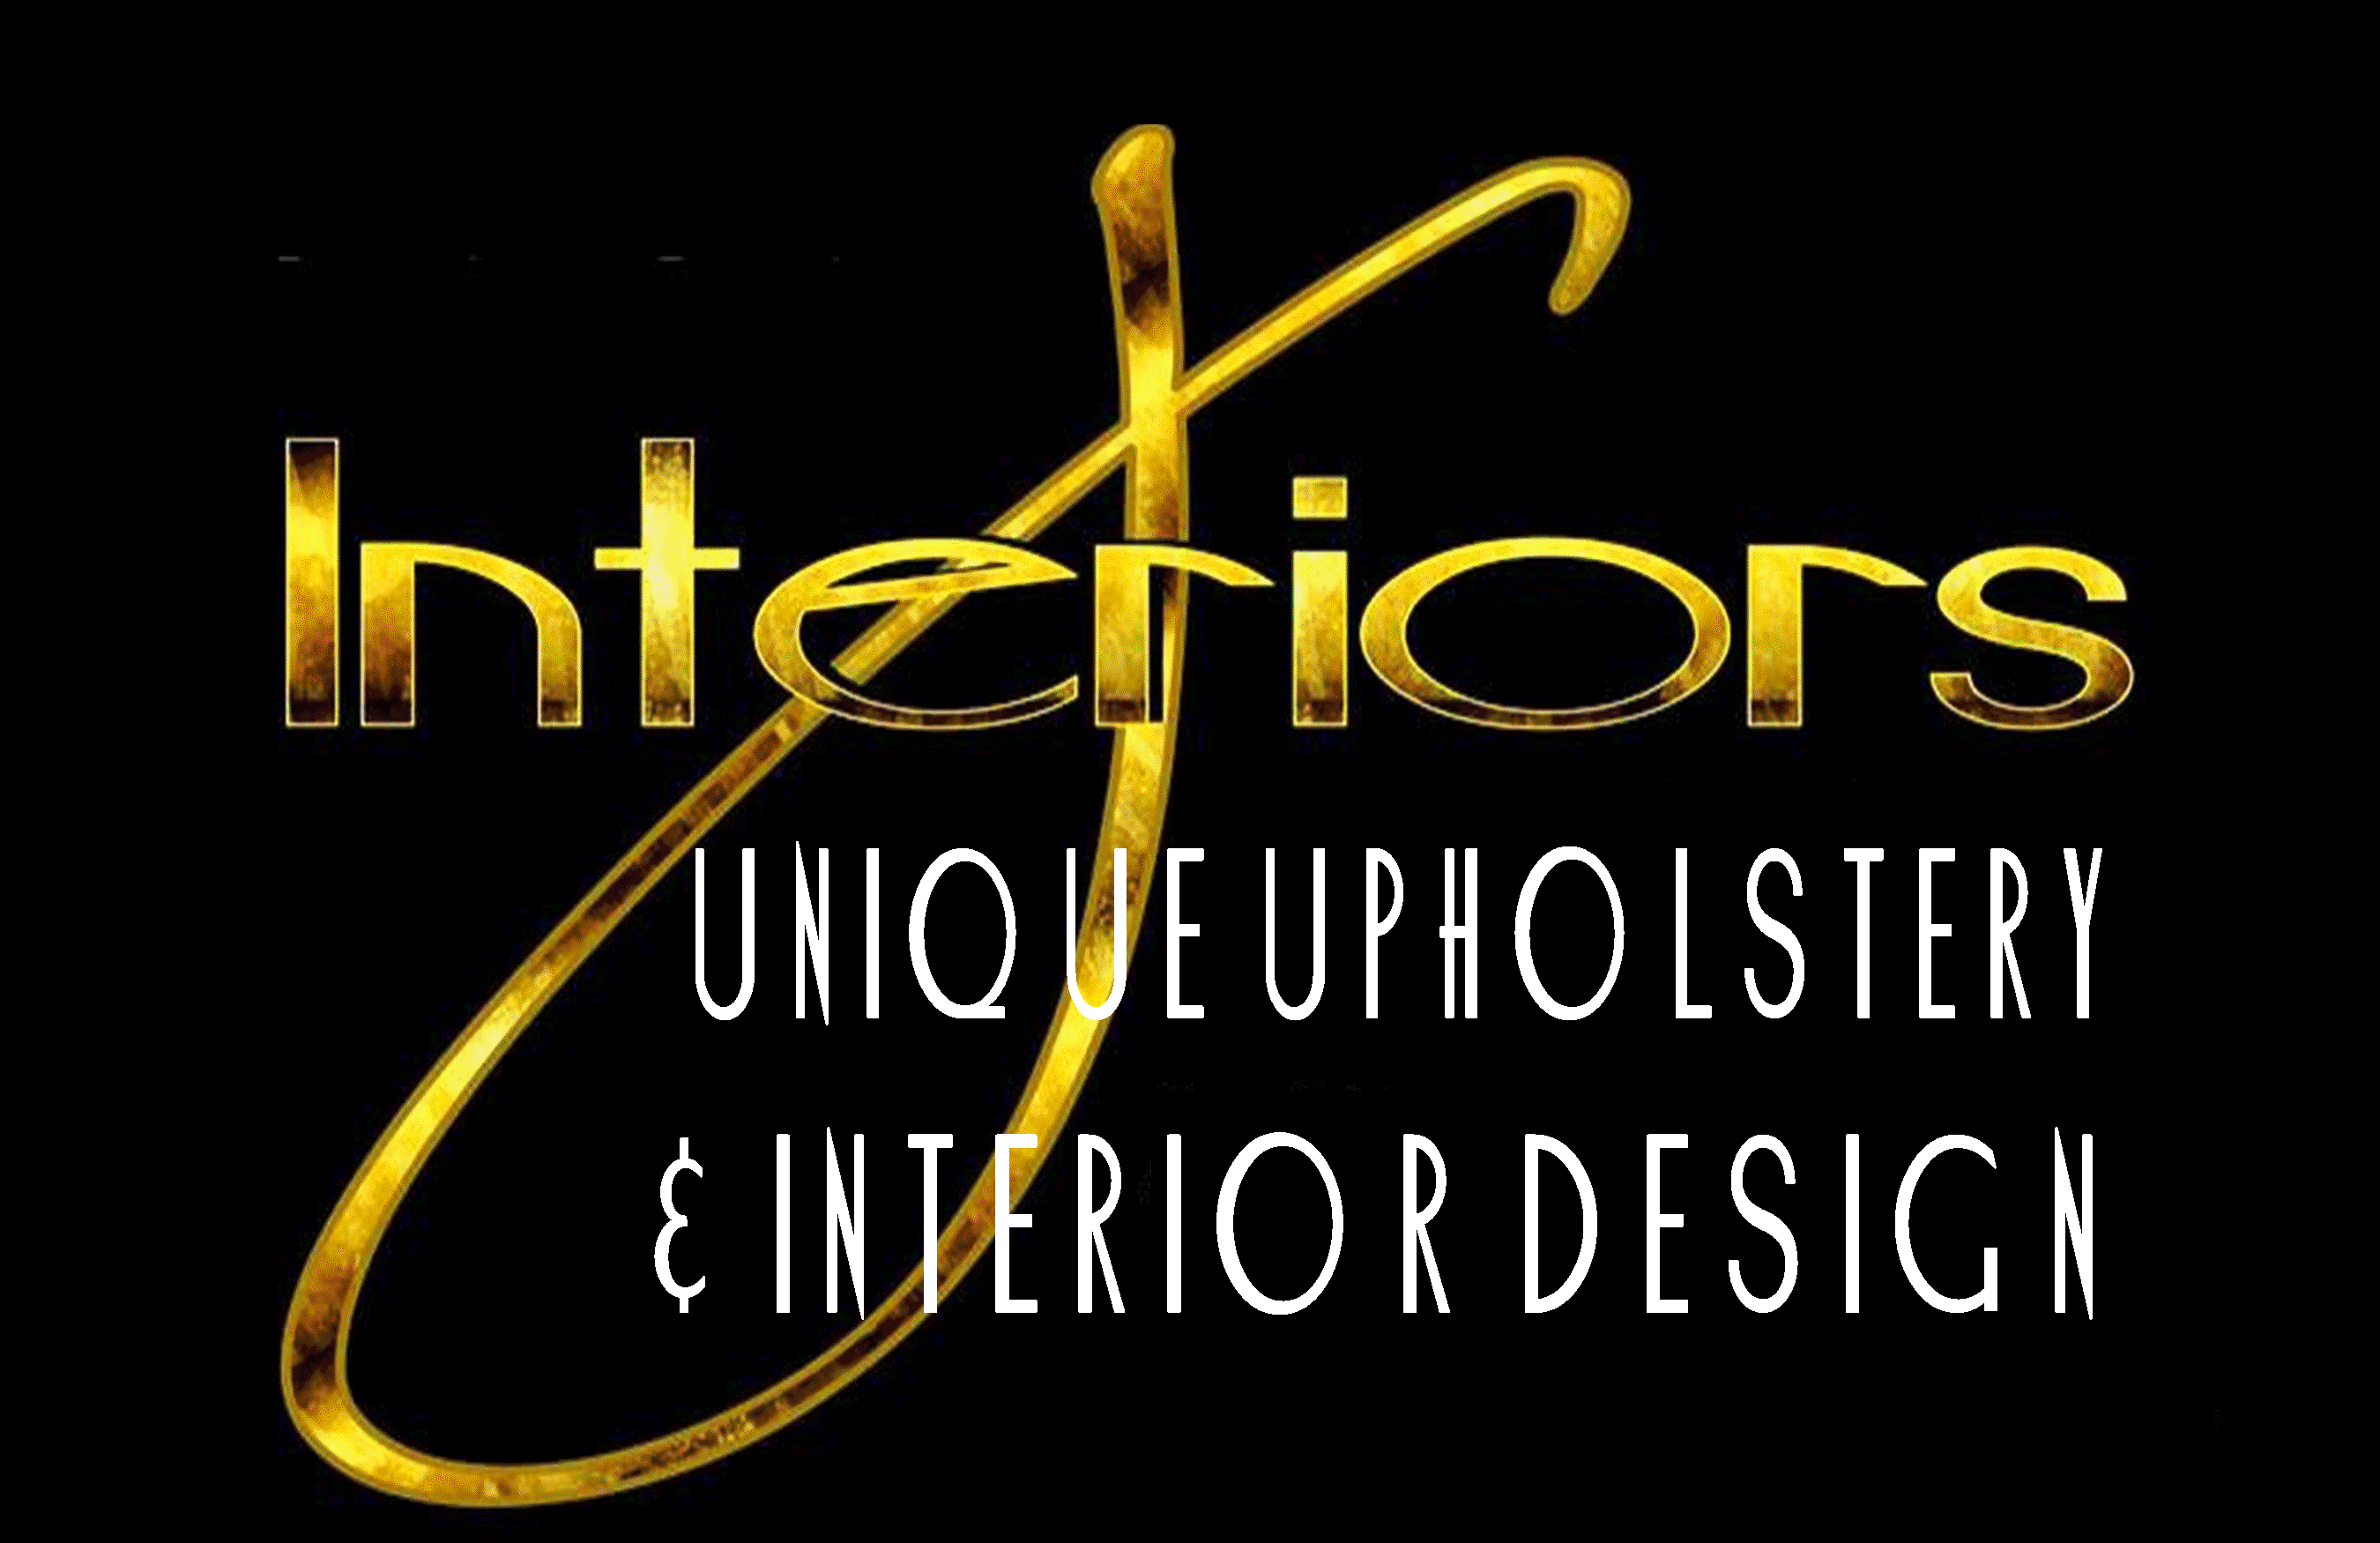 UNIQUE CUSTOM UPHOLSTERY - UNIQUE UPHOLSTERY INTERIORS - classified ad